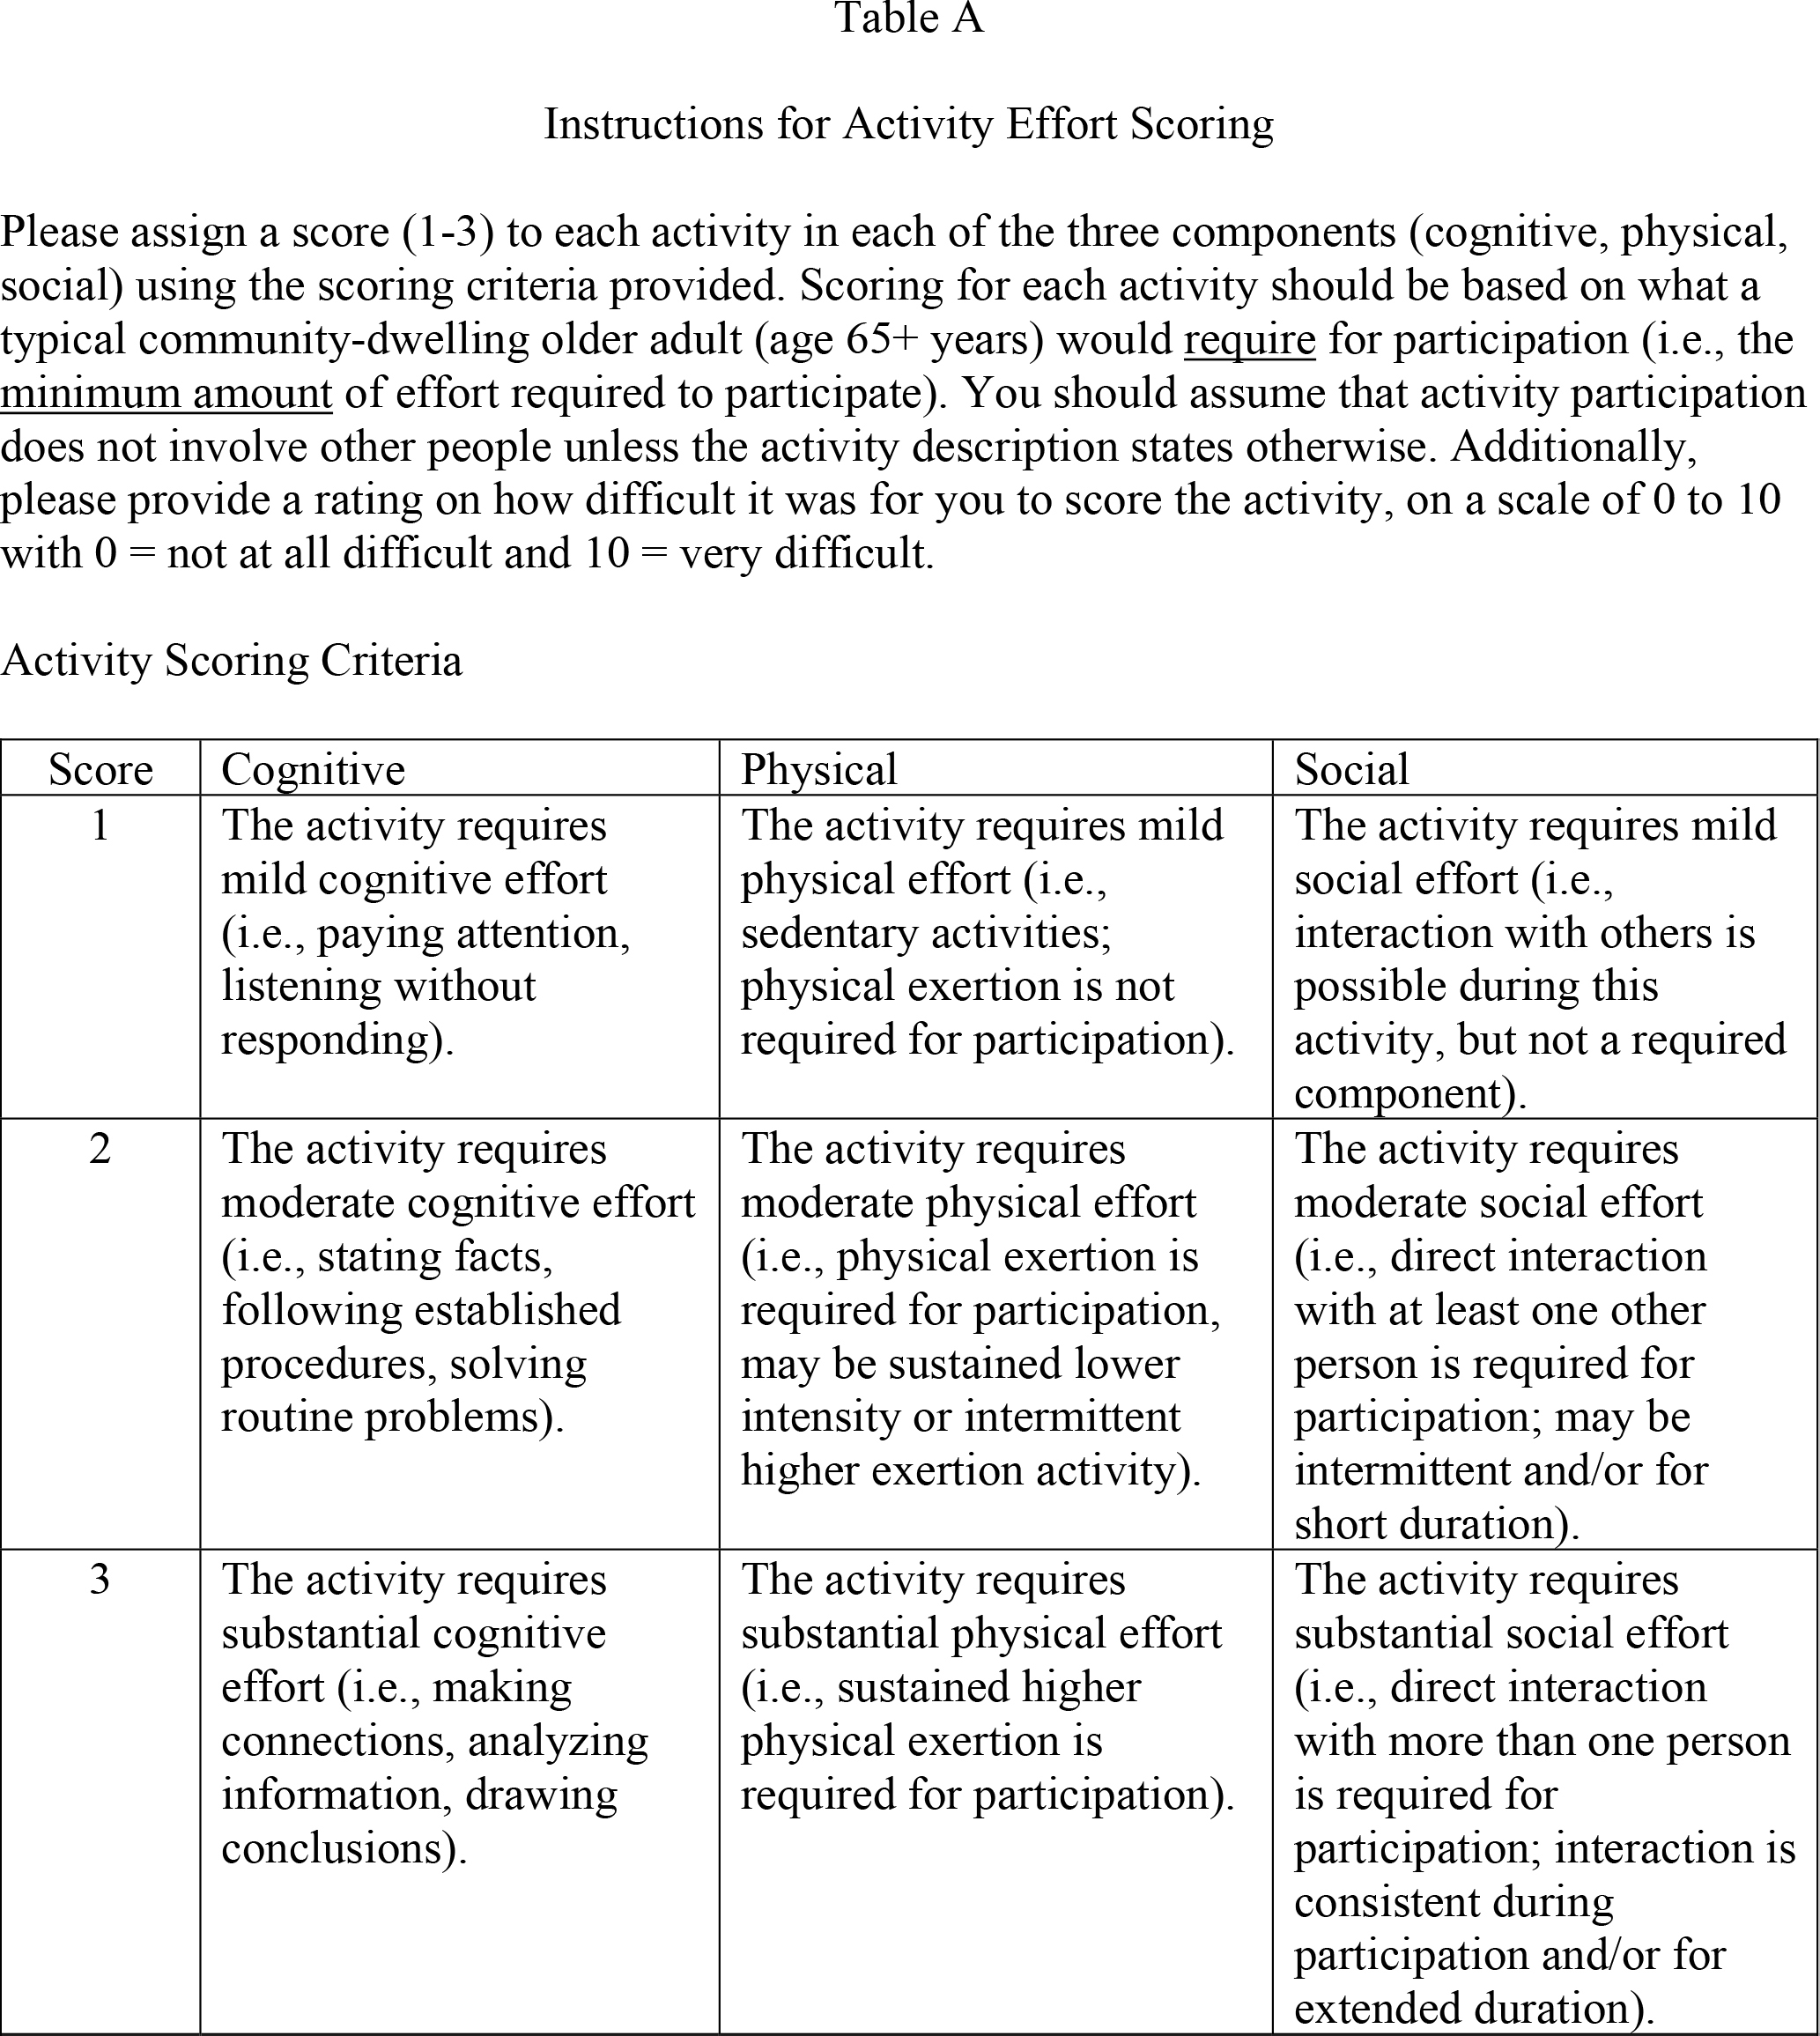 Instructions for Activity Effort ScoringPlease assign a score (1–3) to each activity in each of the three components (cognitive, physical, social) using the scoring criteria provided. Scoring for each activity should be based on what a typical community-dwelling older adult (age 65+ years) would require for participation (i.e., the minimum amount of effort required to participate). You should assume that activity participation does not involve other people unless the activity description states otherwise. Additionally, please provide a rating on how difficult it was for you to score the activity, on a scale of 0 to 10 with 0 = not at all difficult and 10 = very difficult.Activity Scoring Criteria